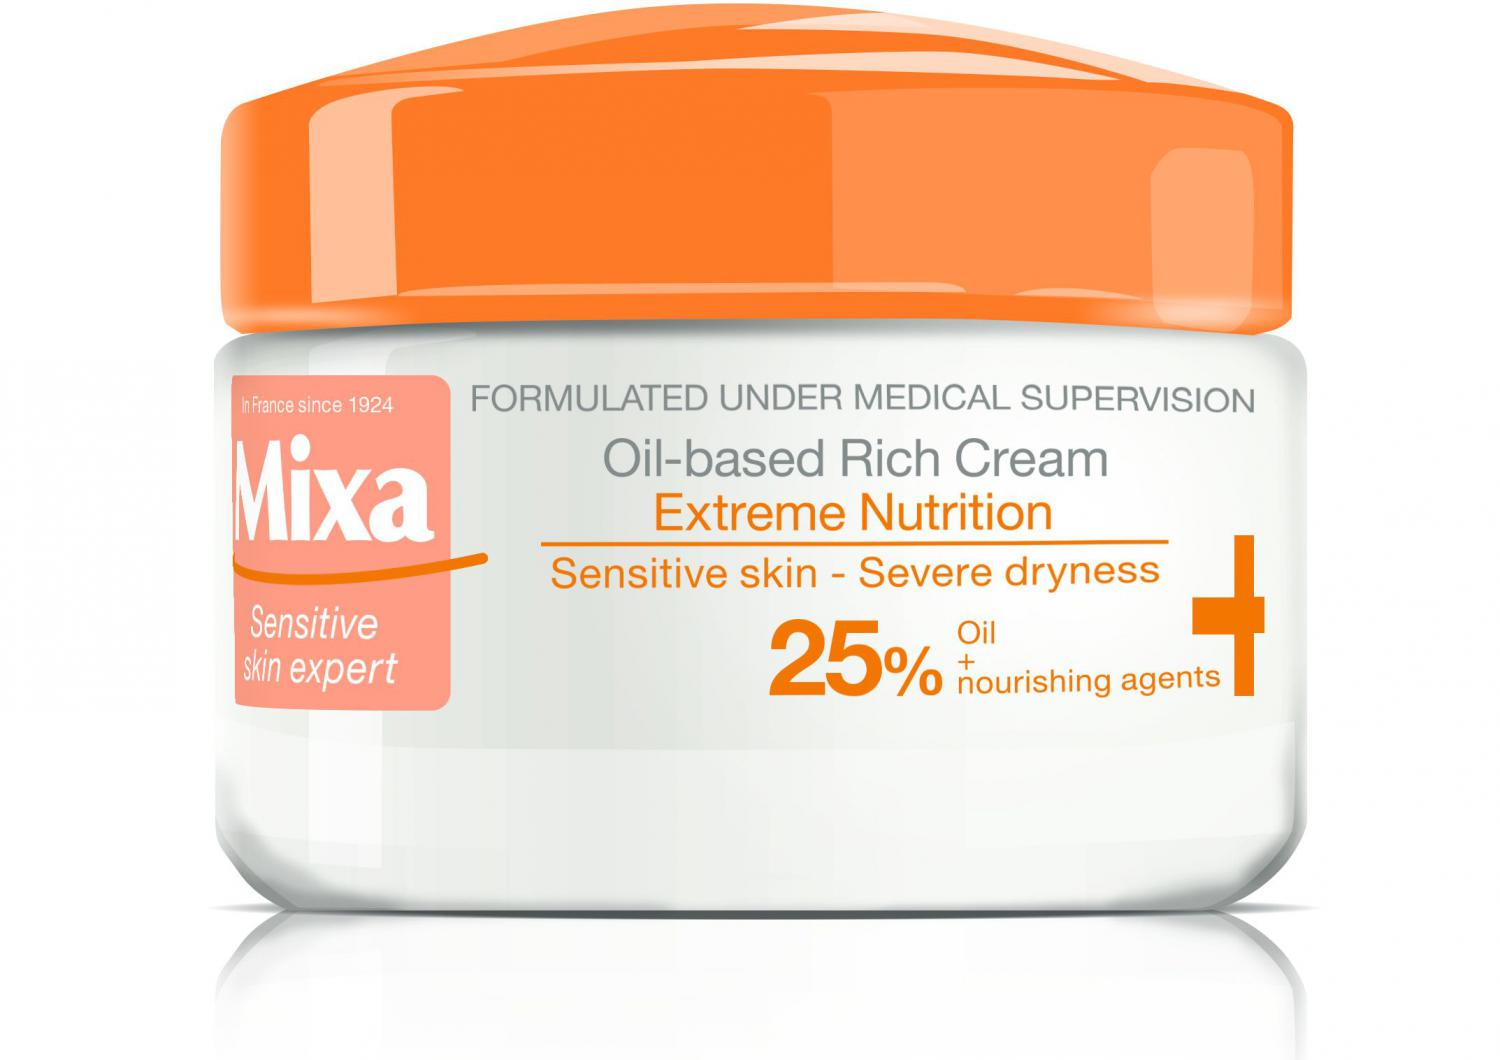 Mixa Oil-based Rich Cream Extreme Nutrition